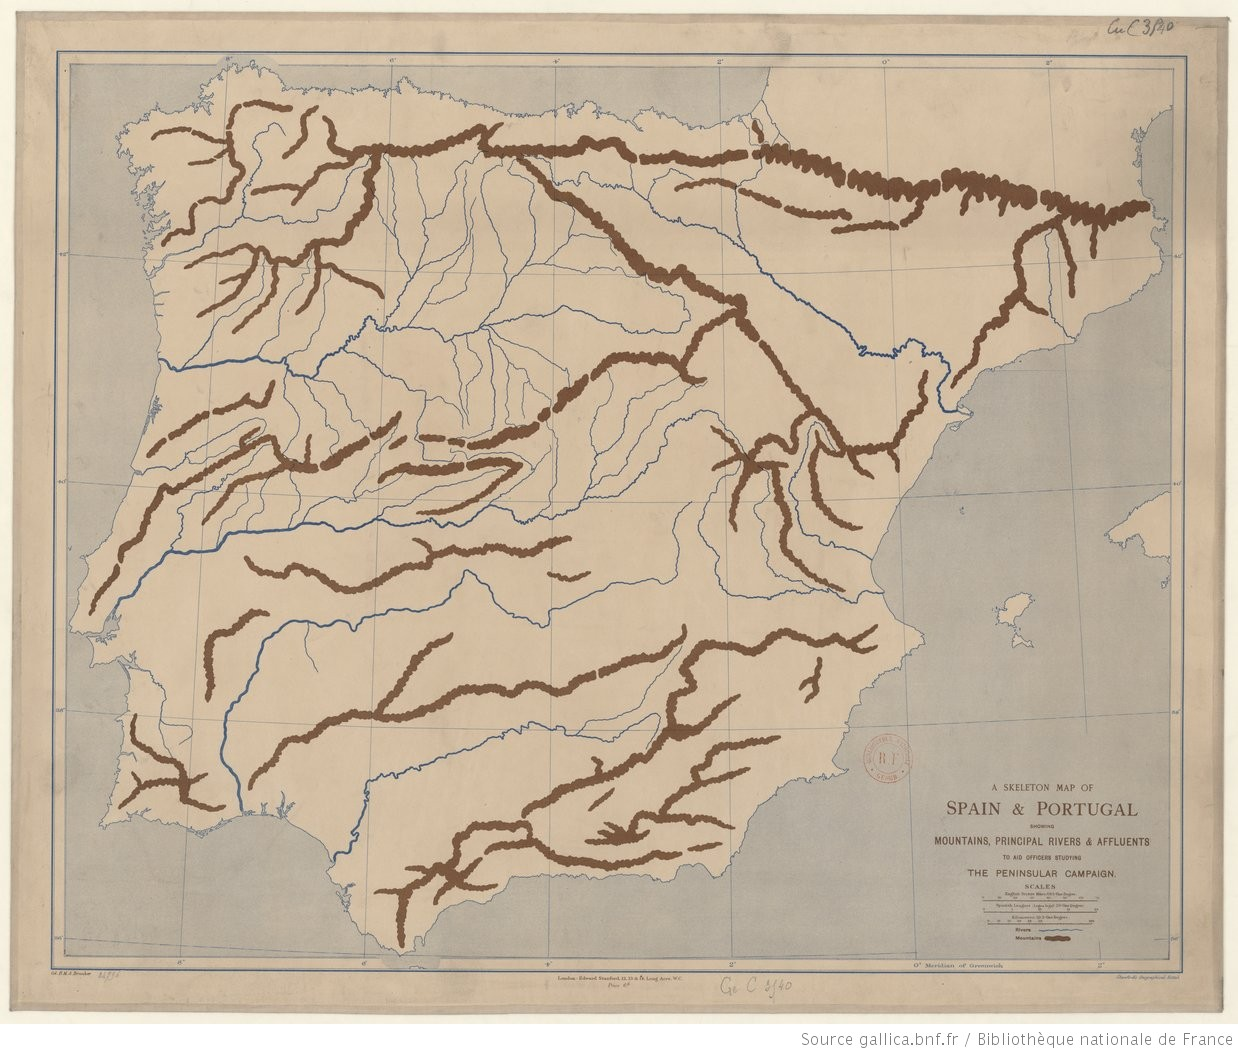 Map Of Spain Rivers.A Skeleton Map Of Spain And Portugal Showing Mountains Principal